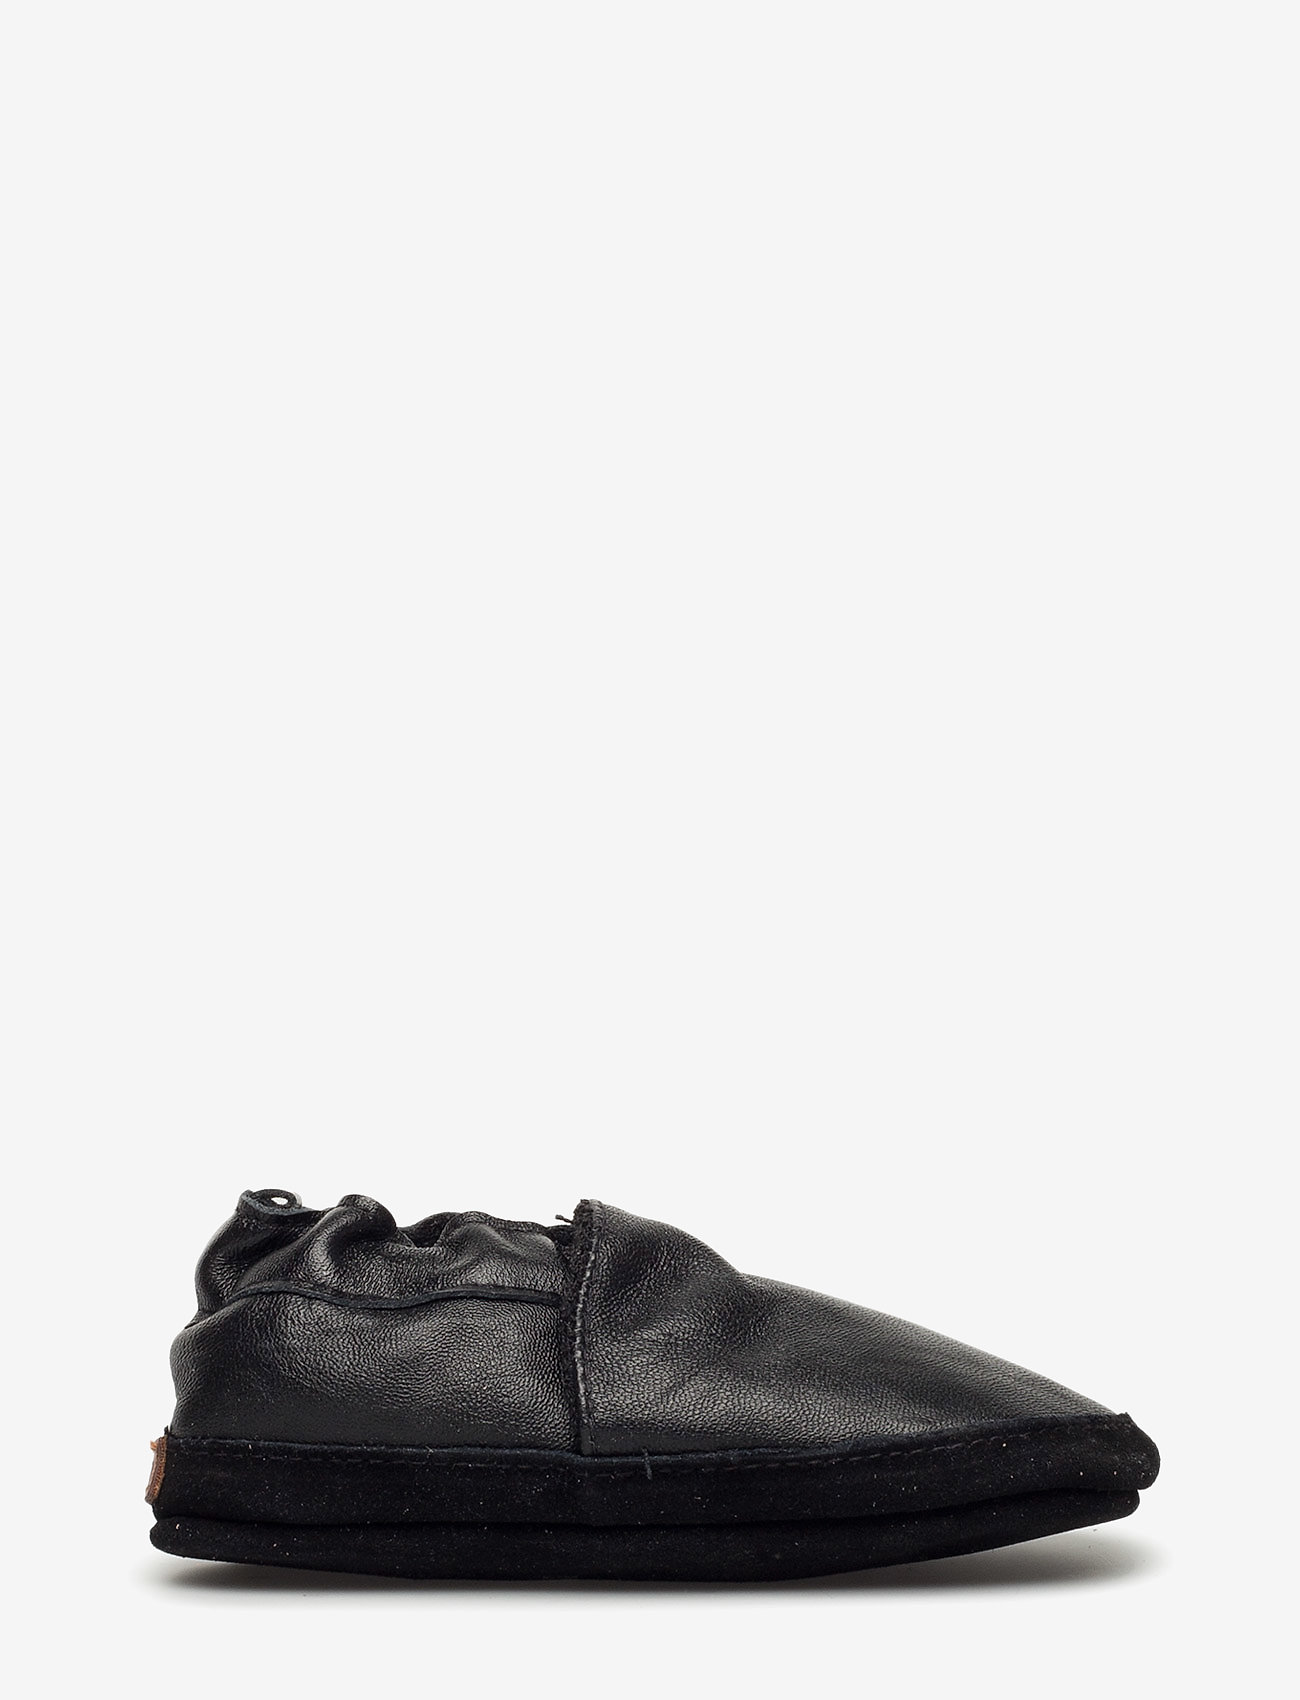 Melton - Leather shoe - Loafer - hausschuhe - 190/black - 1